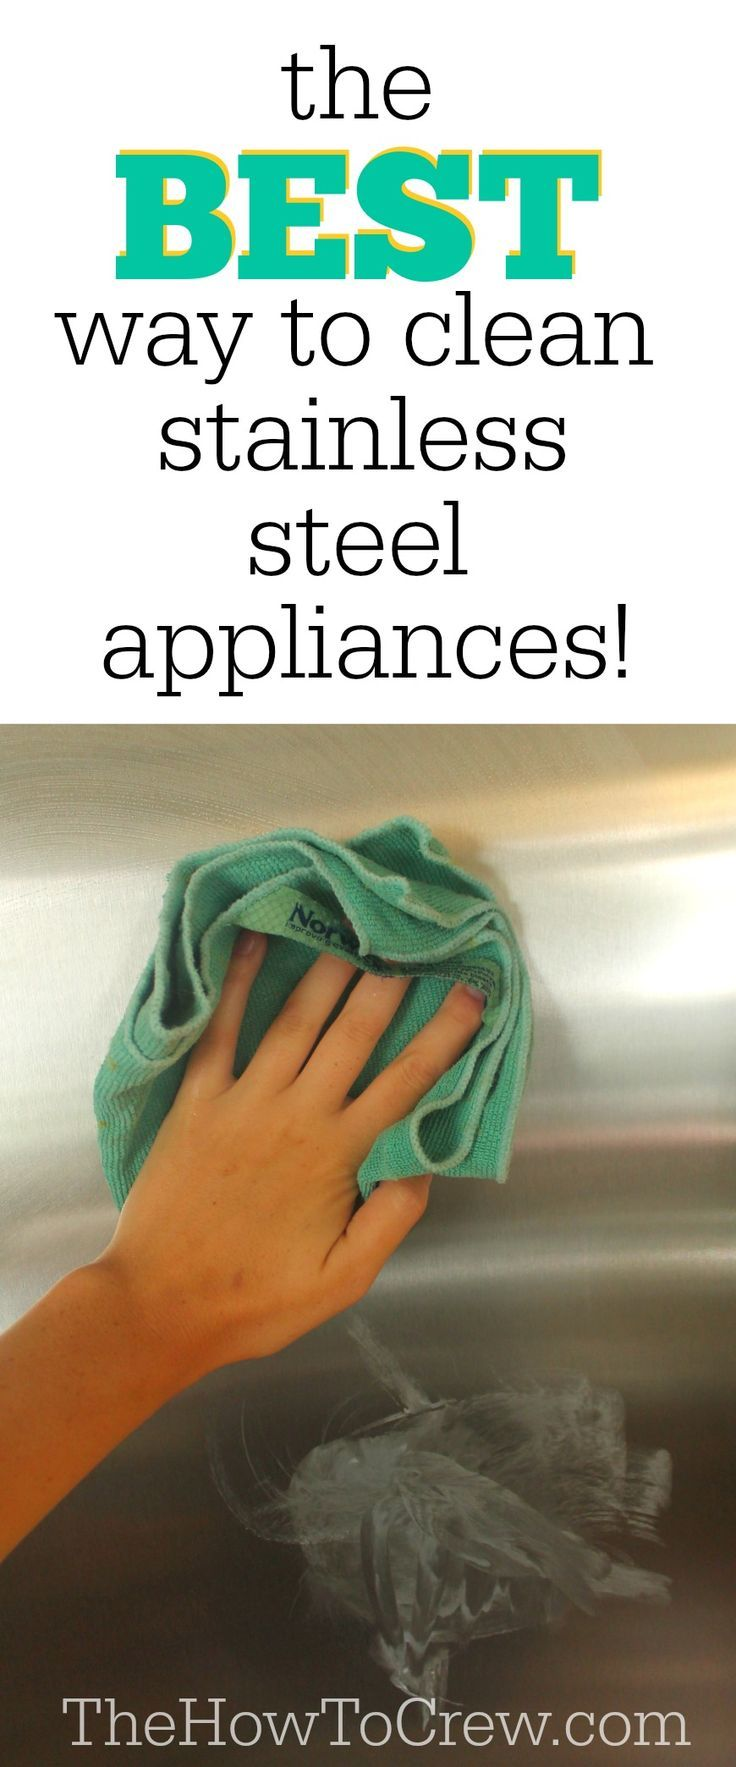 the best way to clean stainless steel appliances from diy cleaning. Black Bedroom Furniture Sets. Home Design Ideas